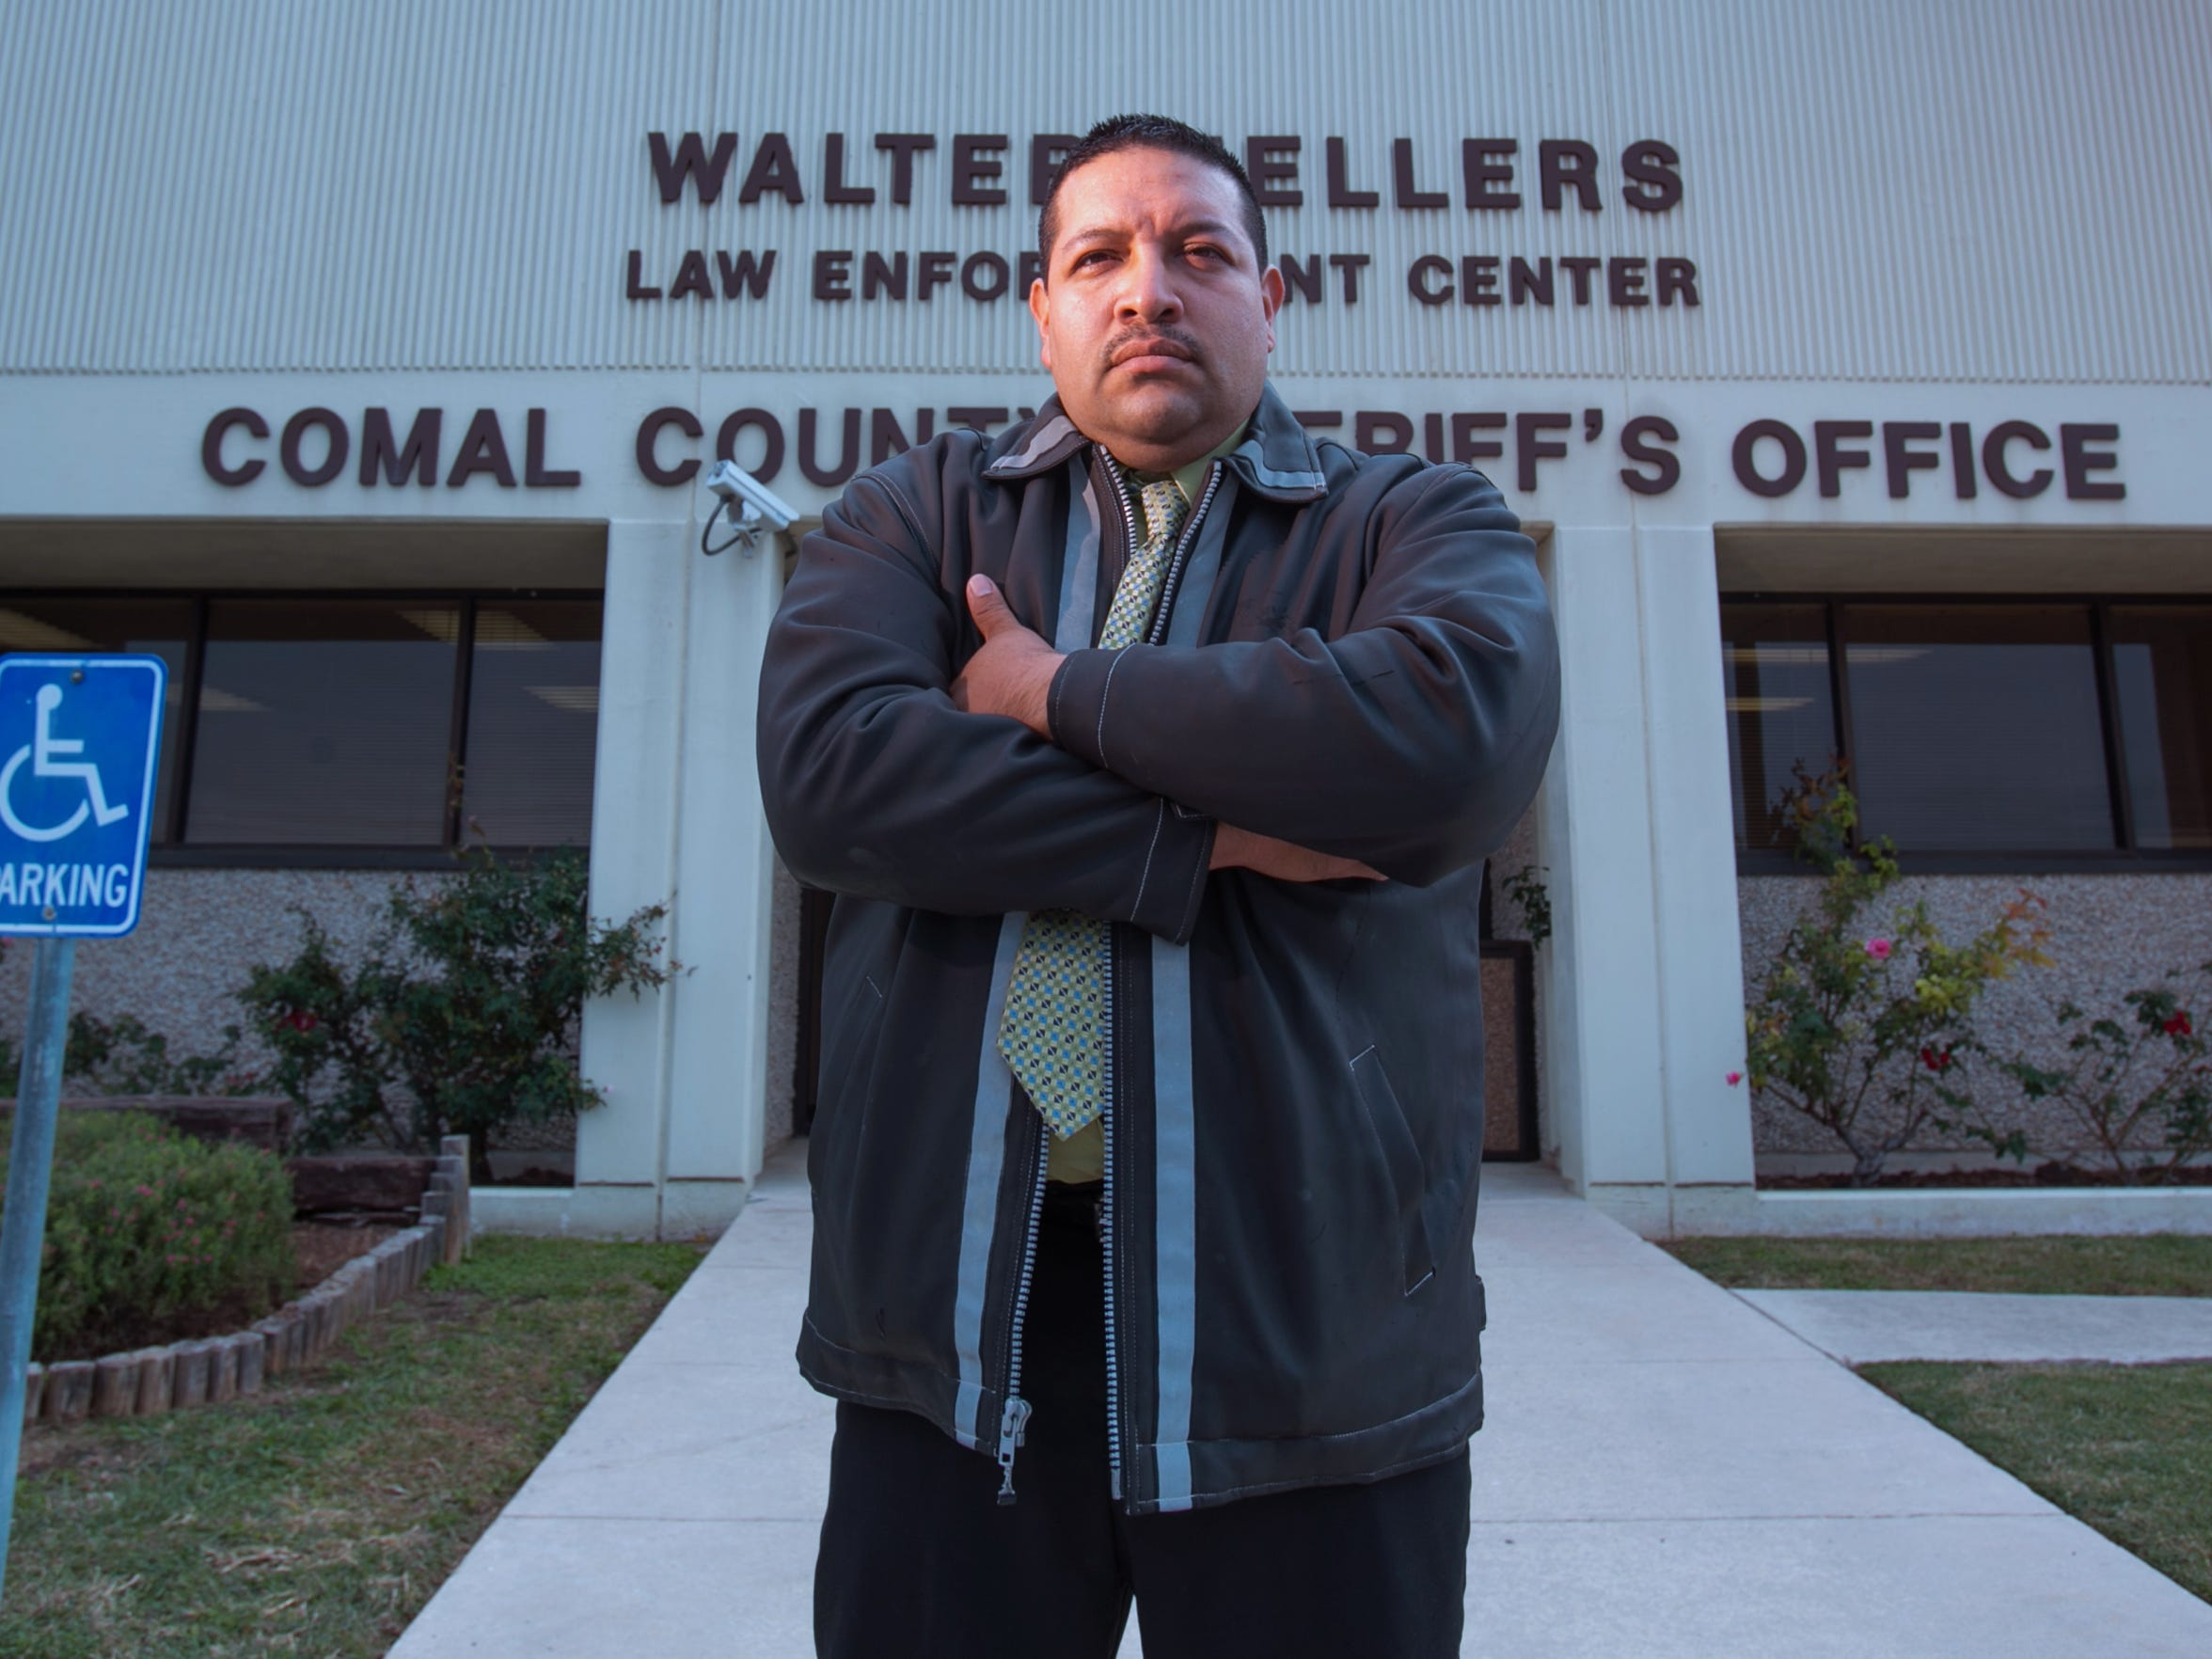 Detective Juan Guerrero of the Comal County Sheriff's Office has been investigating the death of Brad Halsey since Halsey's body was found on Halloween.